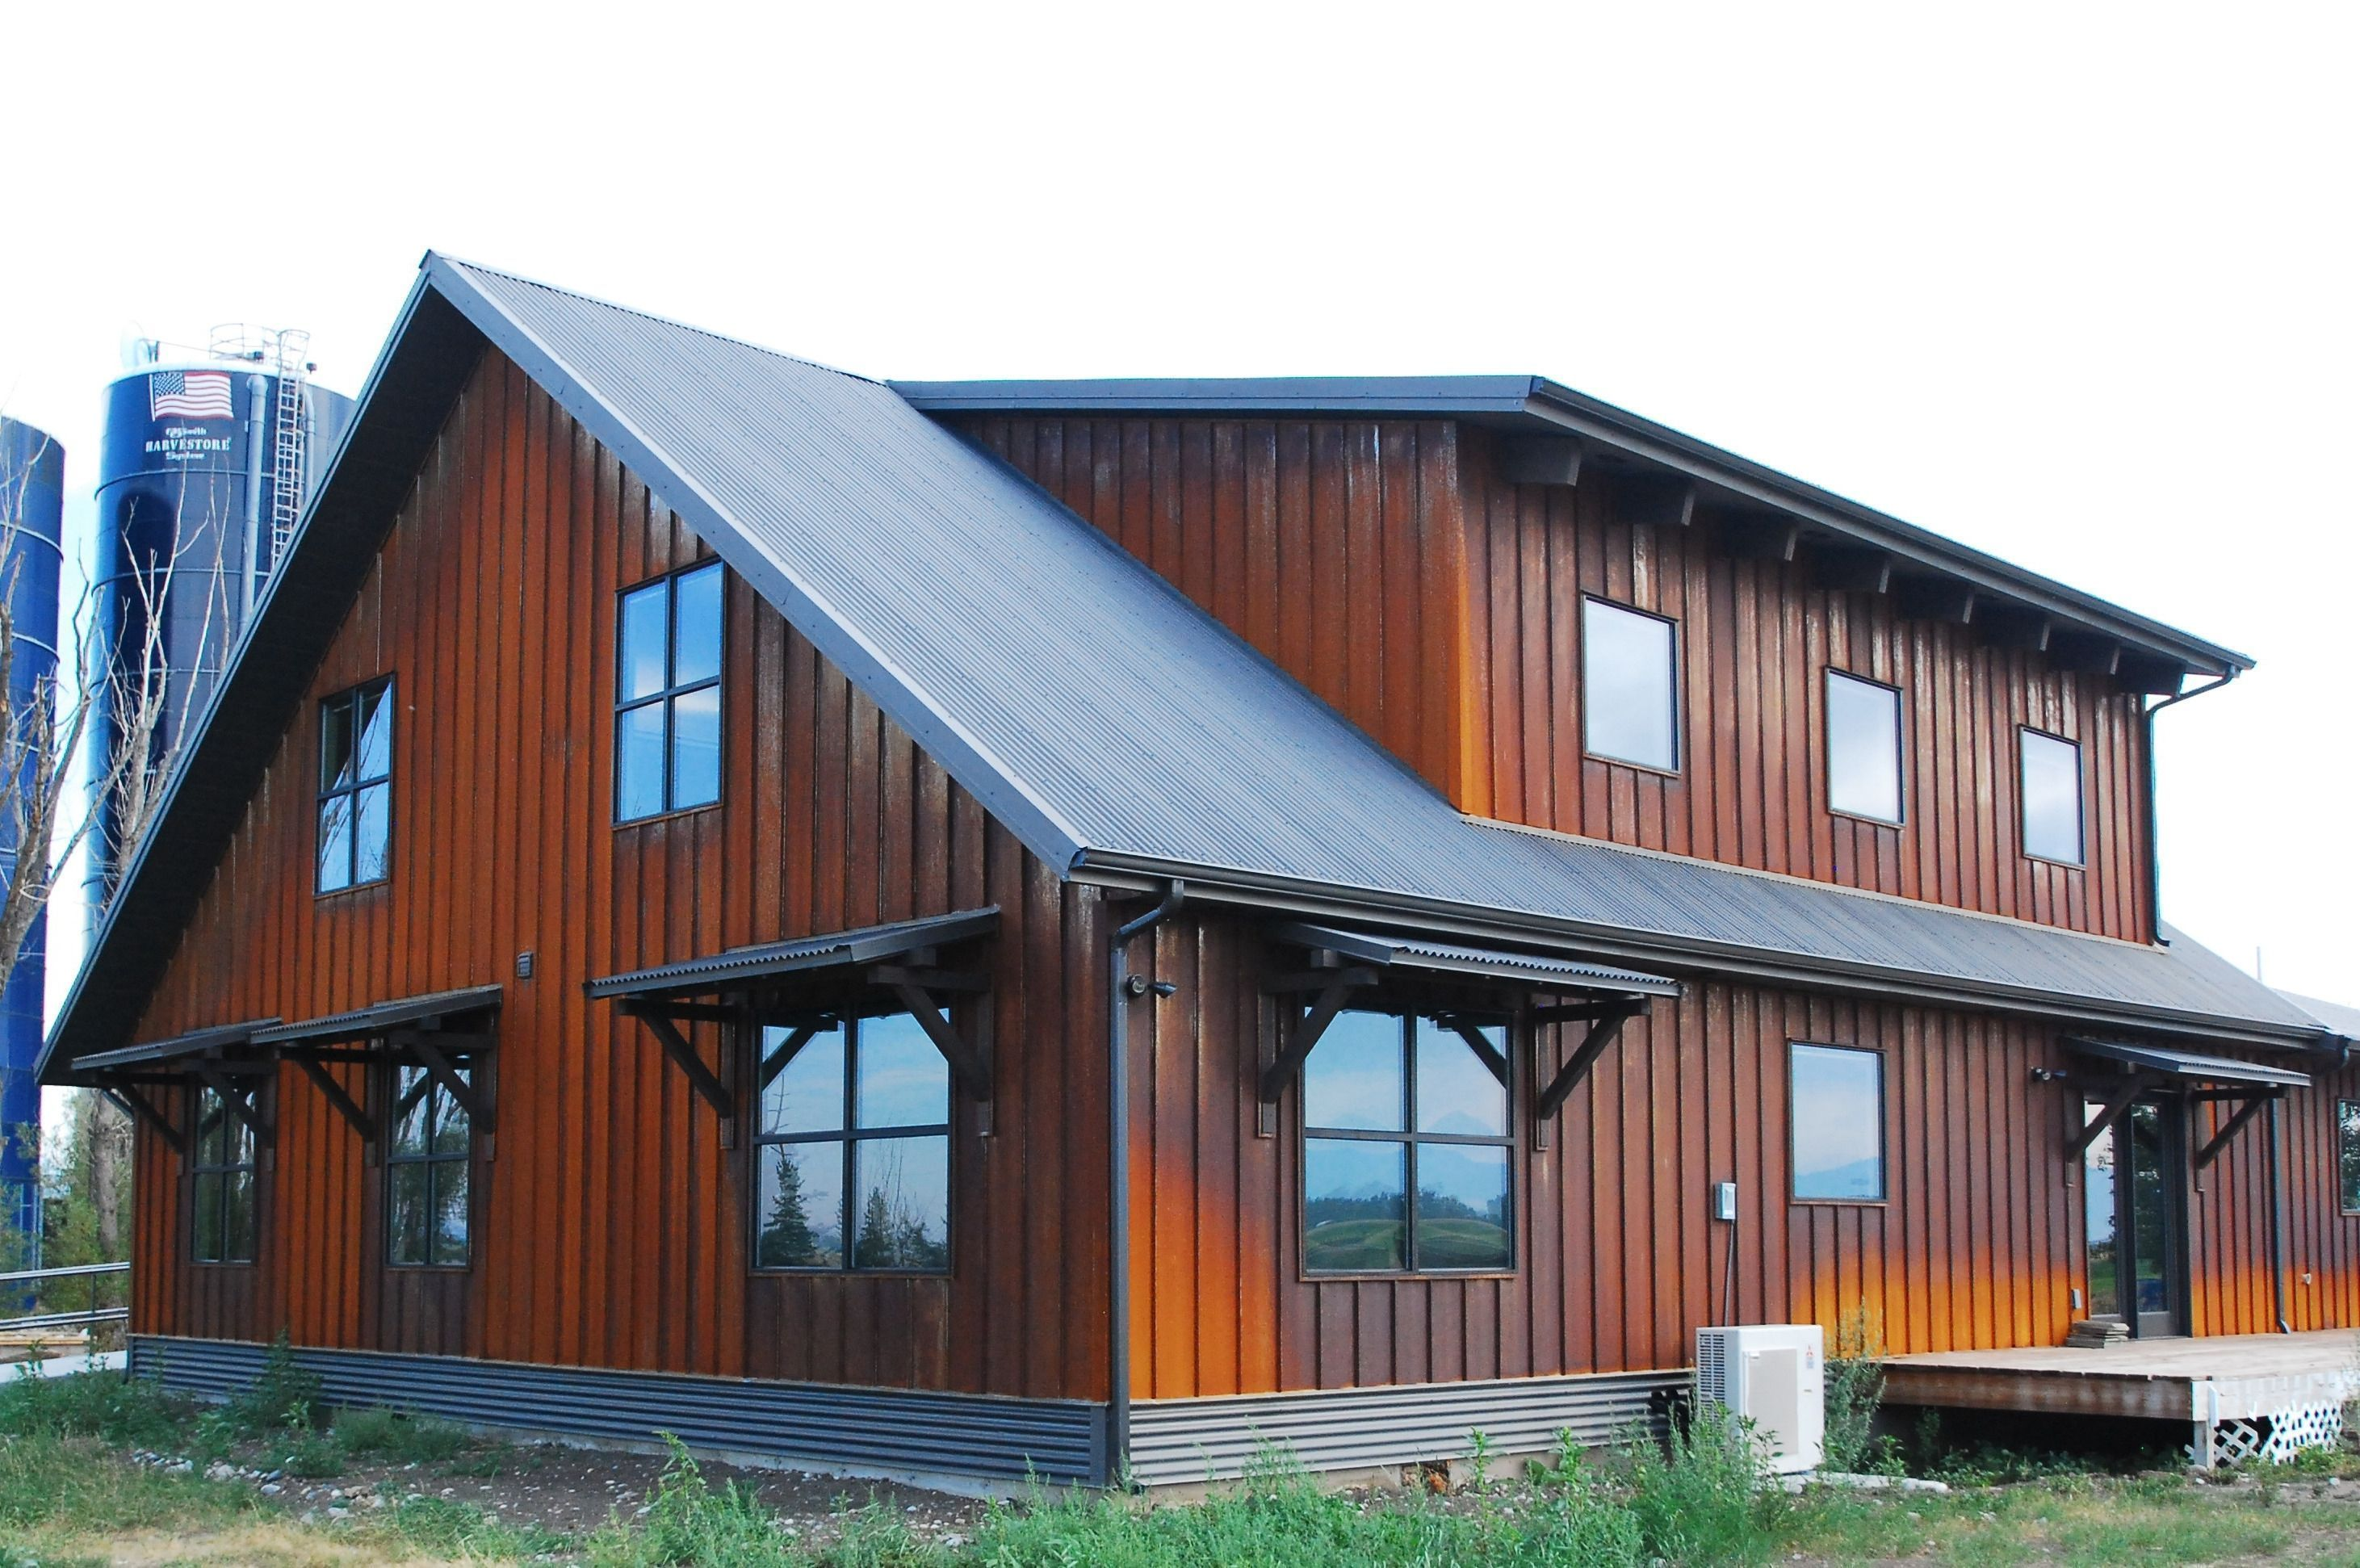 Multiwall Corrugated Galvanized Steel Copper And Custombuilt Corrugated Metal Siding Fascia And House Siding Options Steel Building Homes Metal Building Homes